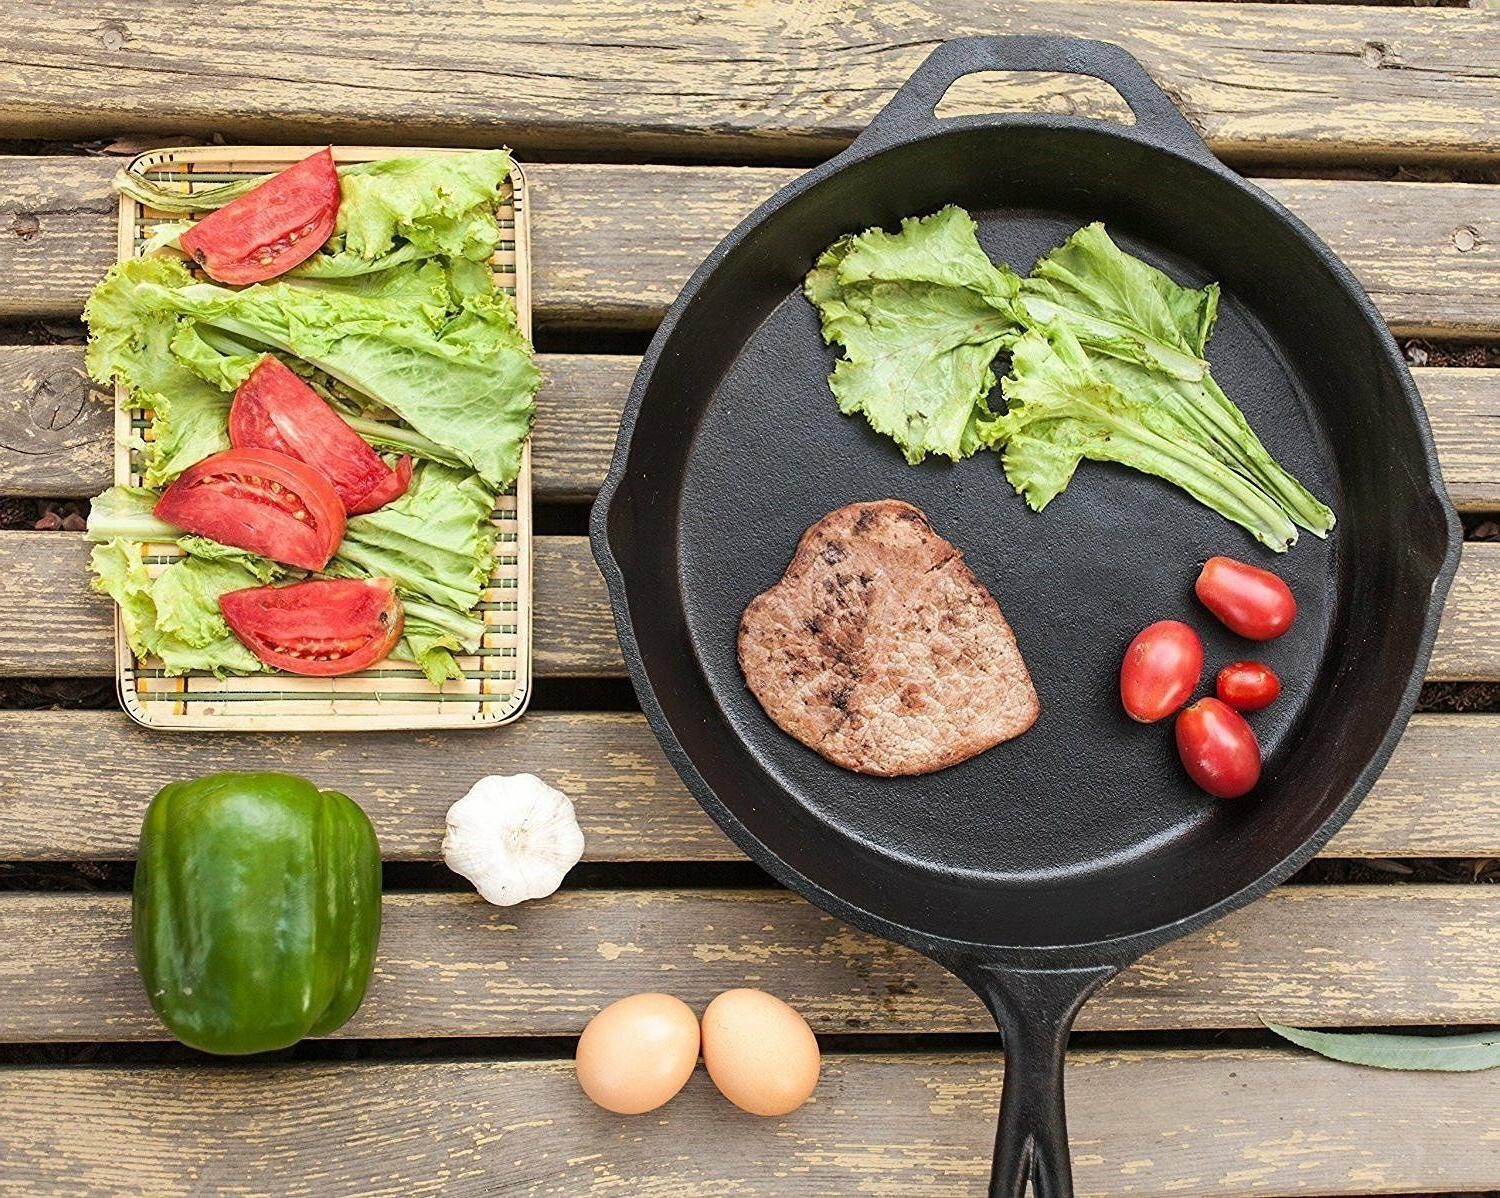 3 CAST IRON SKILLET Pre 10 Inch Stove Fry Pans